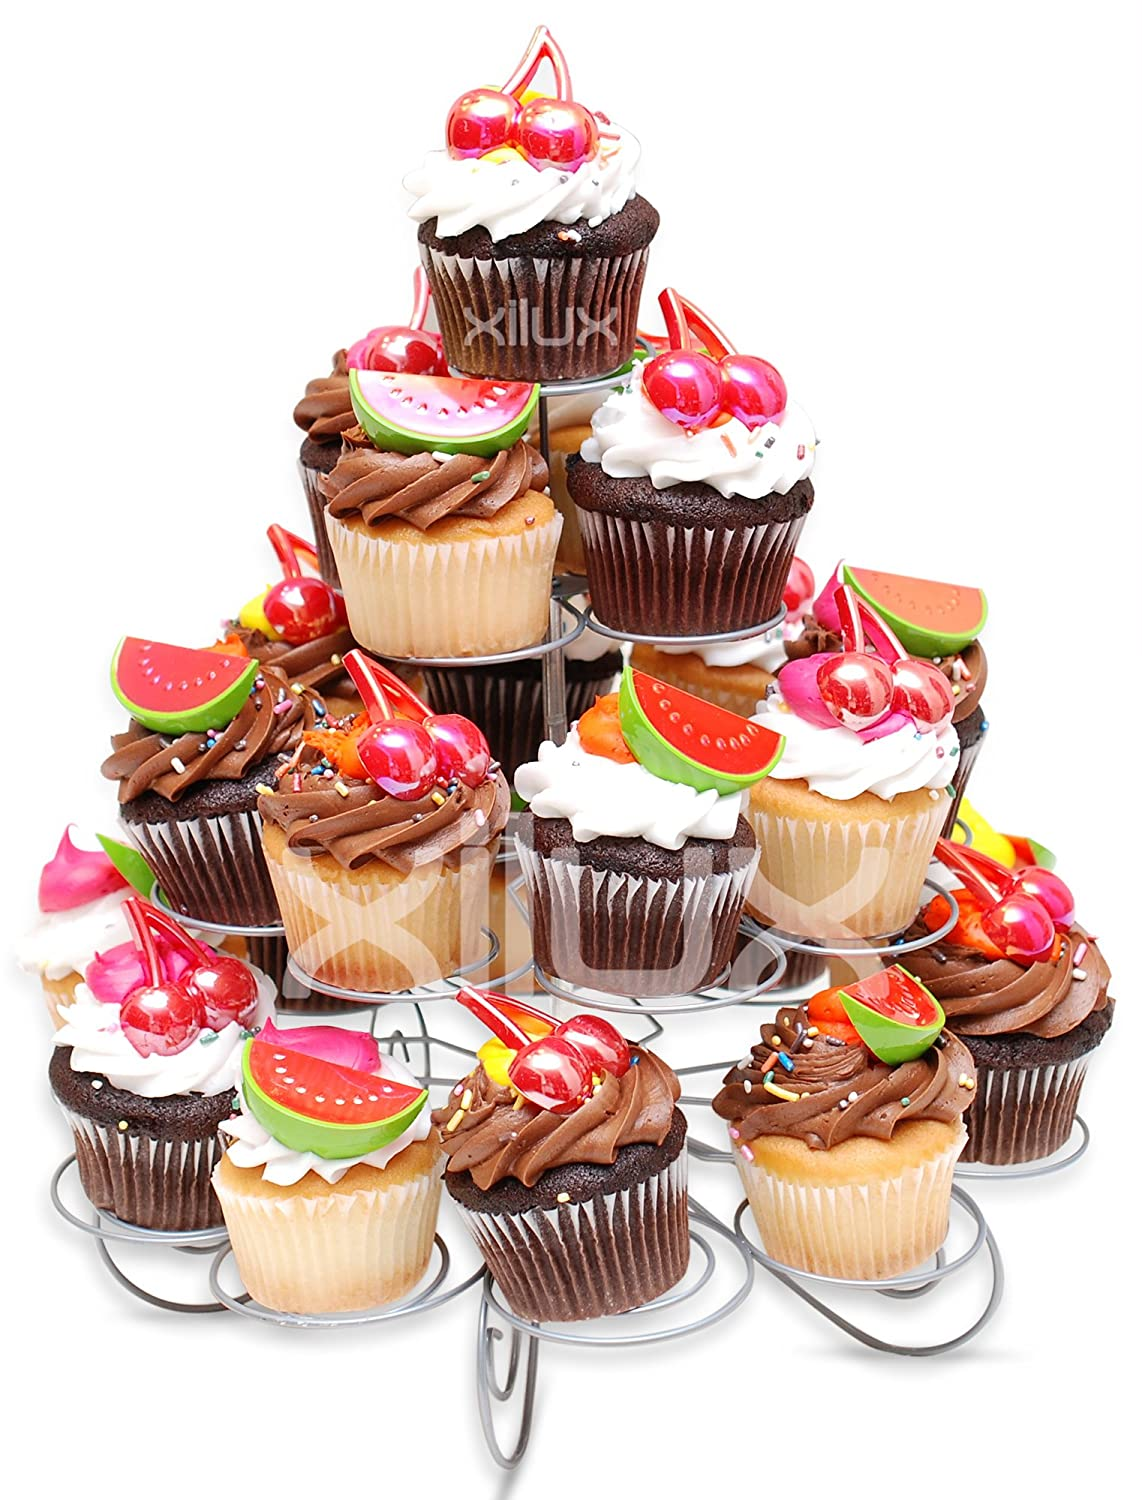 Cupcake Stand for Birthdays and Other Occasions 4 Tier Cupcake Holder for 23 Cupcakes and Desserts COMINHKPR83687